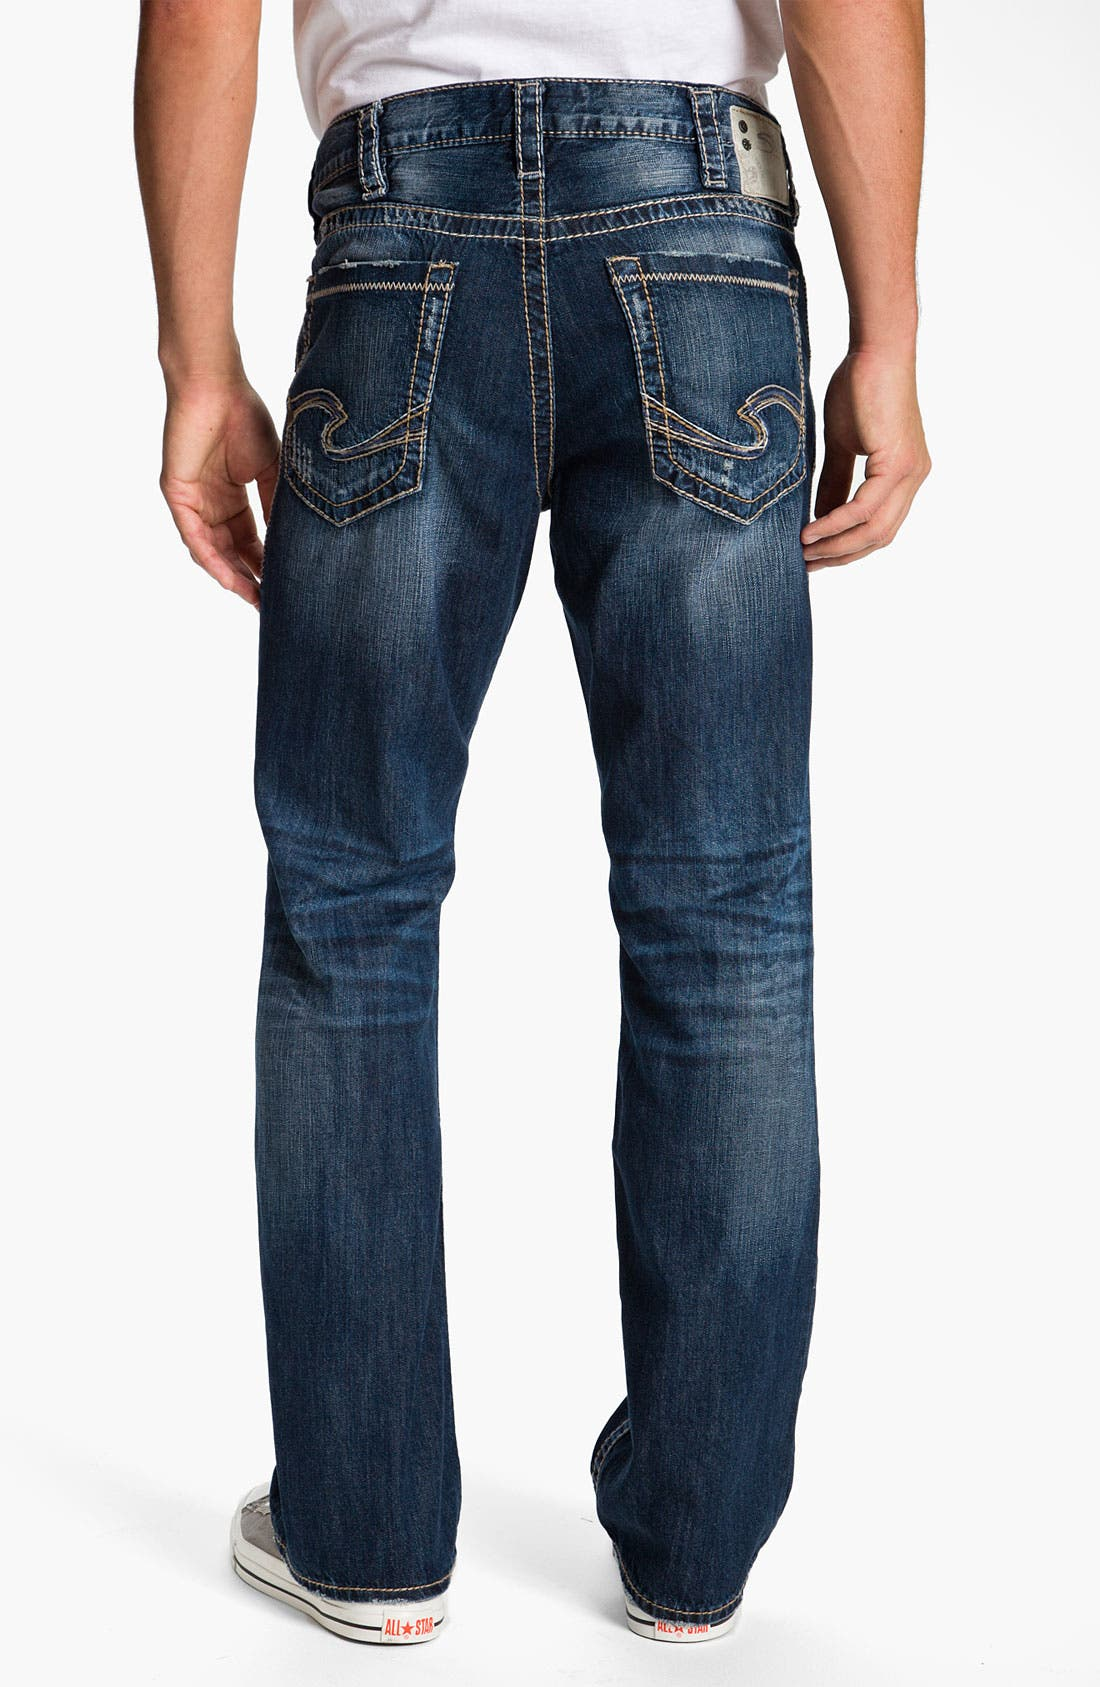 Alternate Image 1 Selected - Silver Jeans Co. 'Grayson' Bootcut Jeans (Indigo)